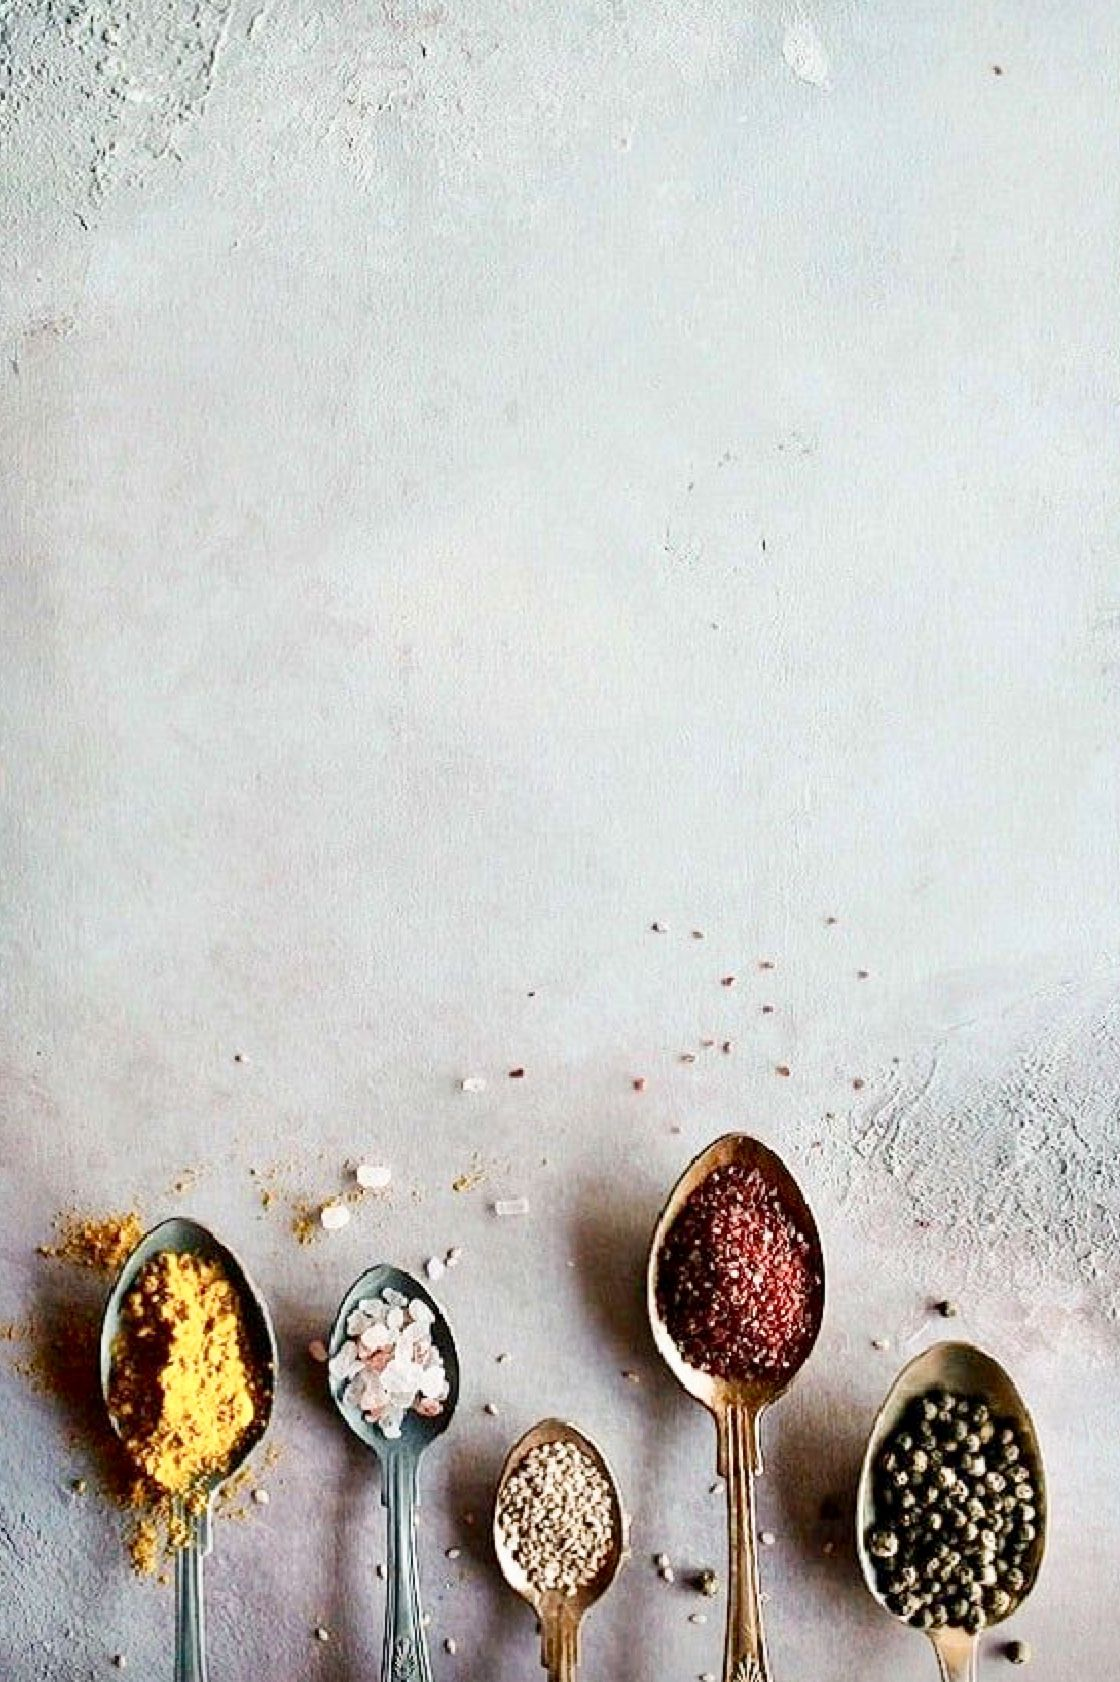 By The Spoonful Food Photography Background Ingredients